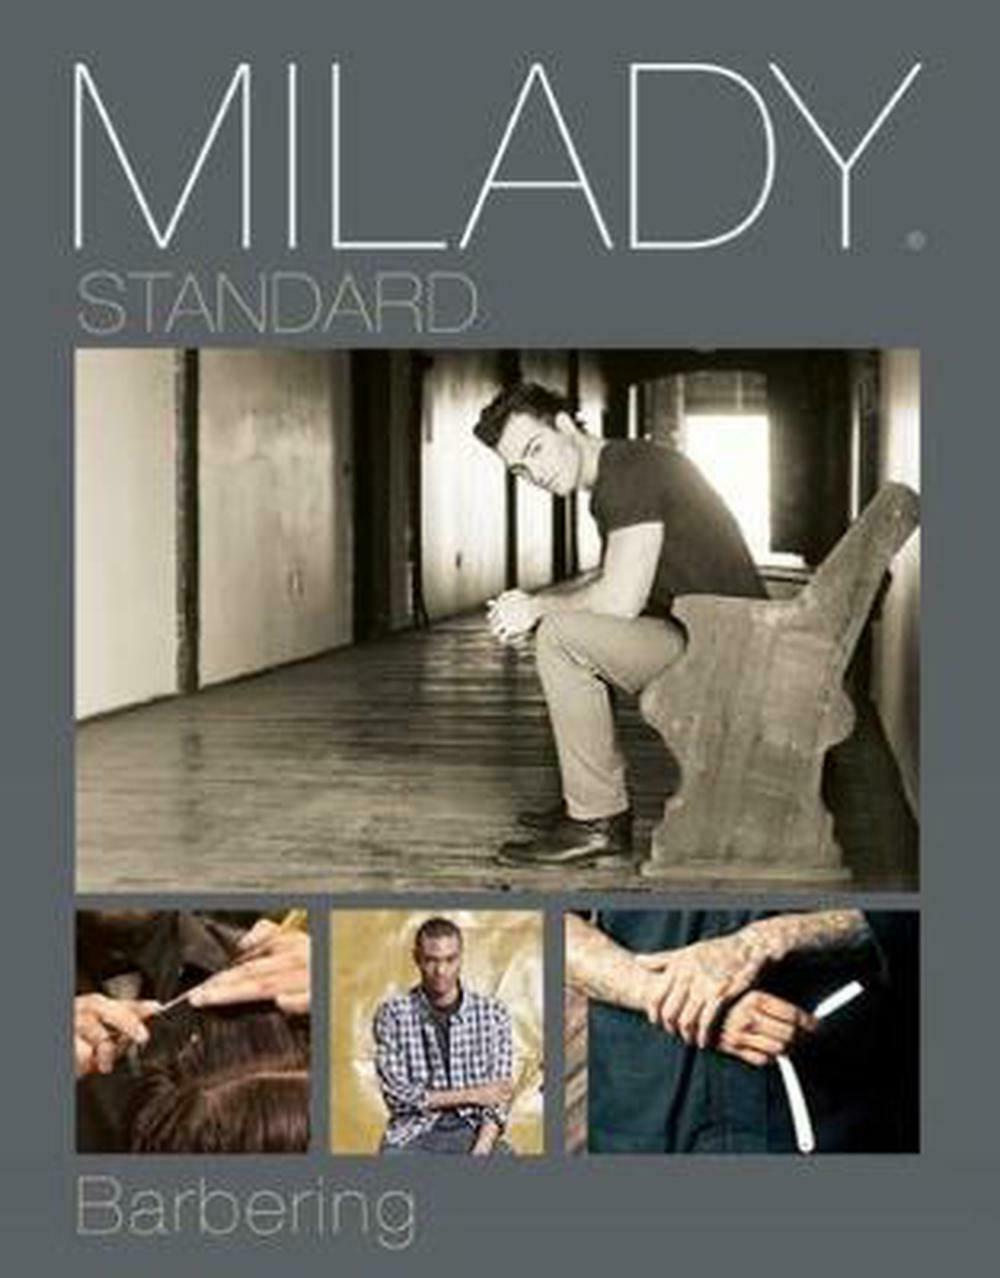 Milady standard barbering by milady english hardcover book free 1 of 1only 3 available fandeluxe Image collections